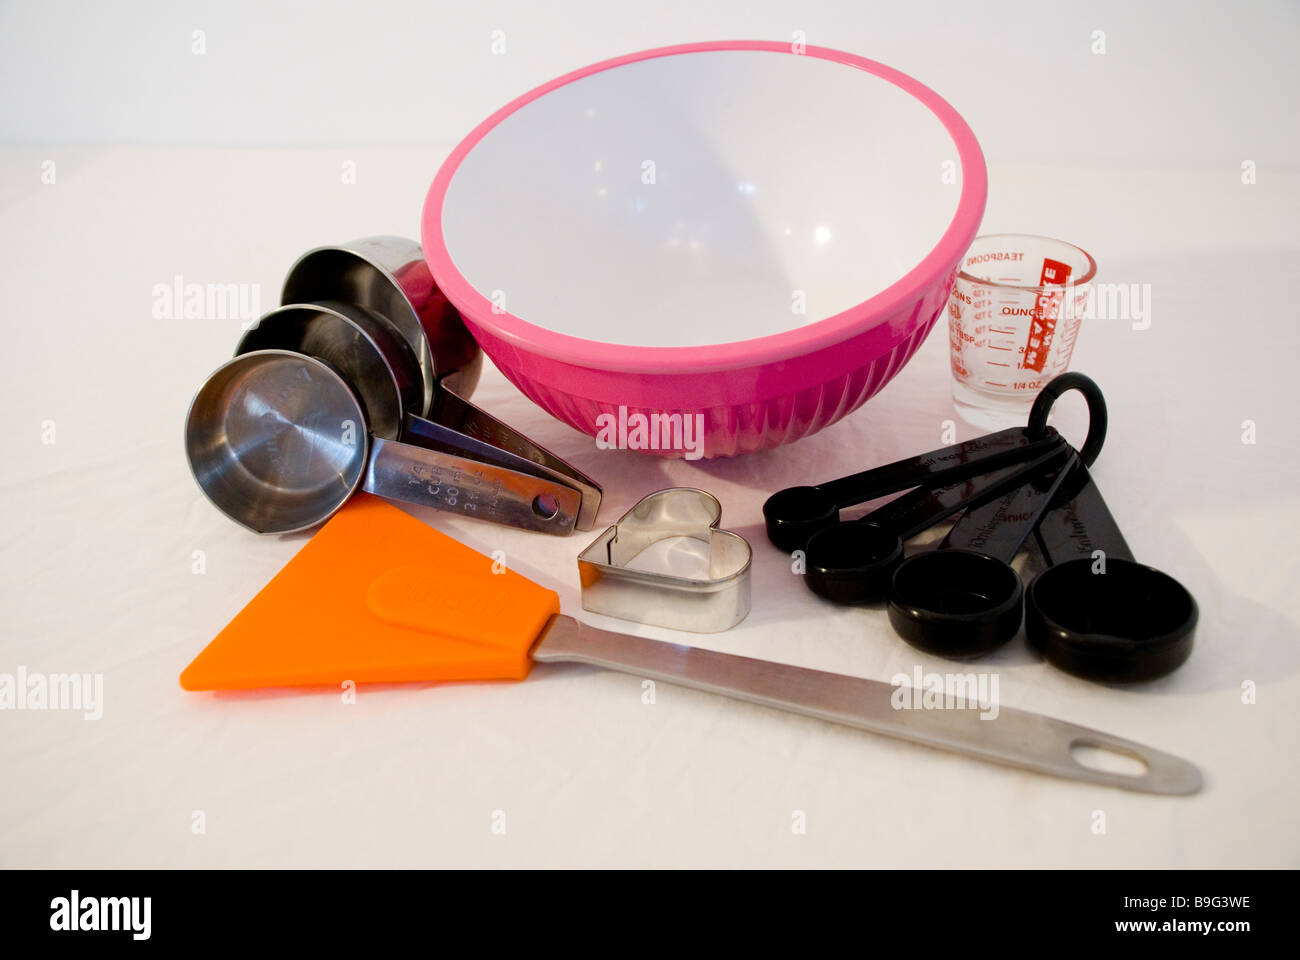 Selection of weighing and measuring kitchen utensils inc. pink bowl, Pyrex jug & measuring spoons on a white - Stock Image